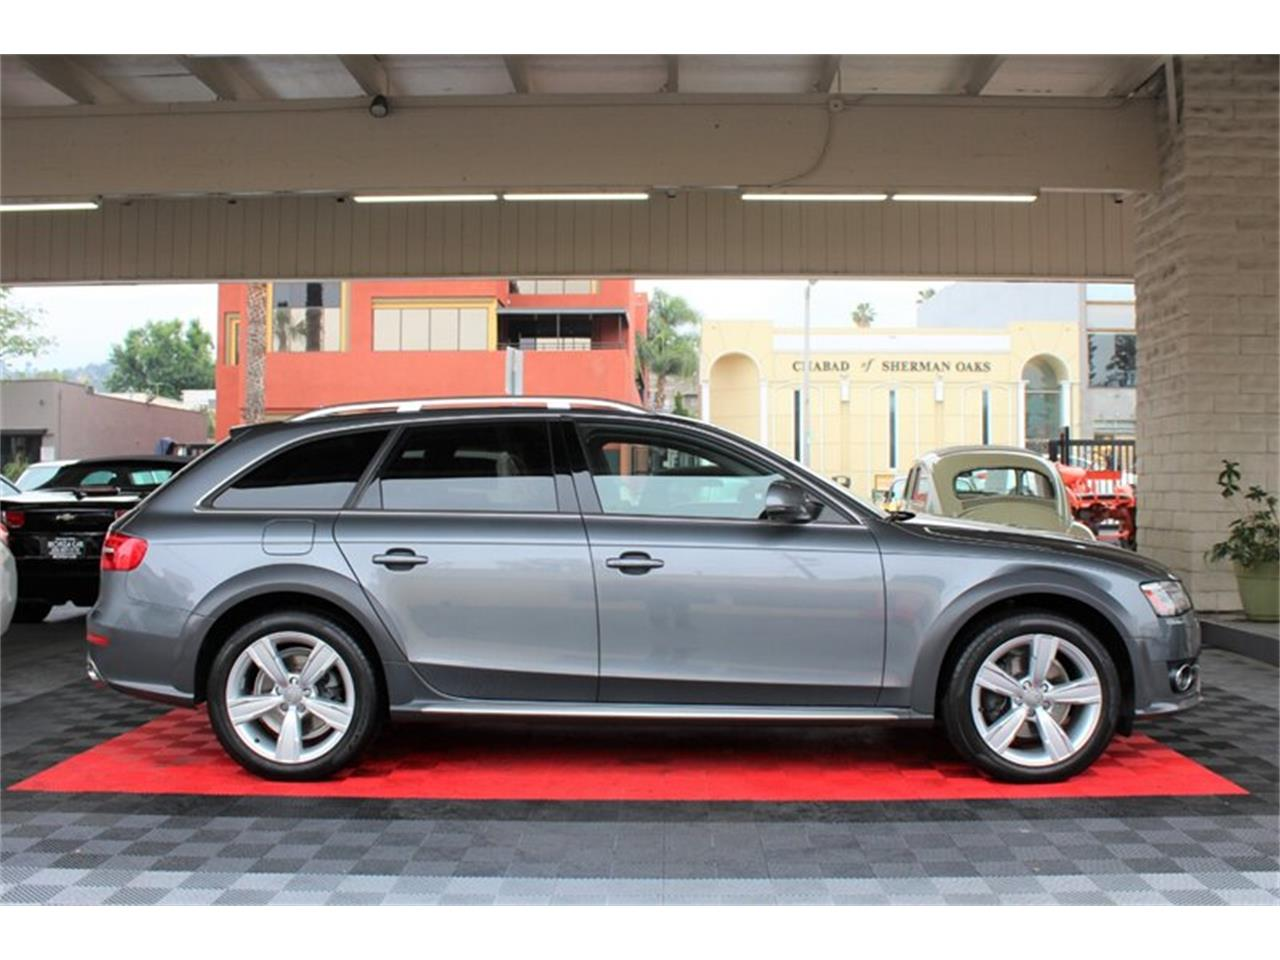 2015 Audi Allroad for sale in Sherman Oaks, CA – photo 7